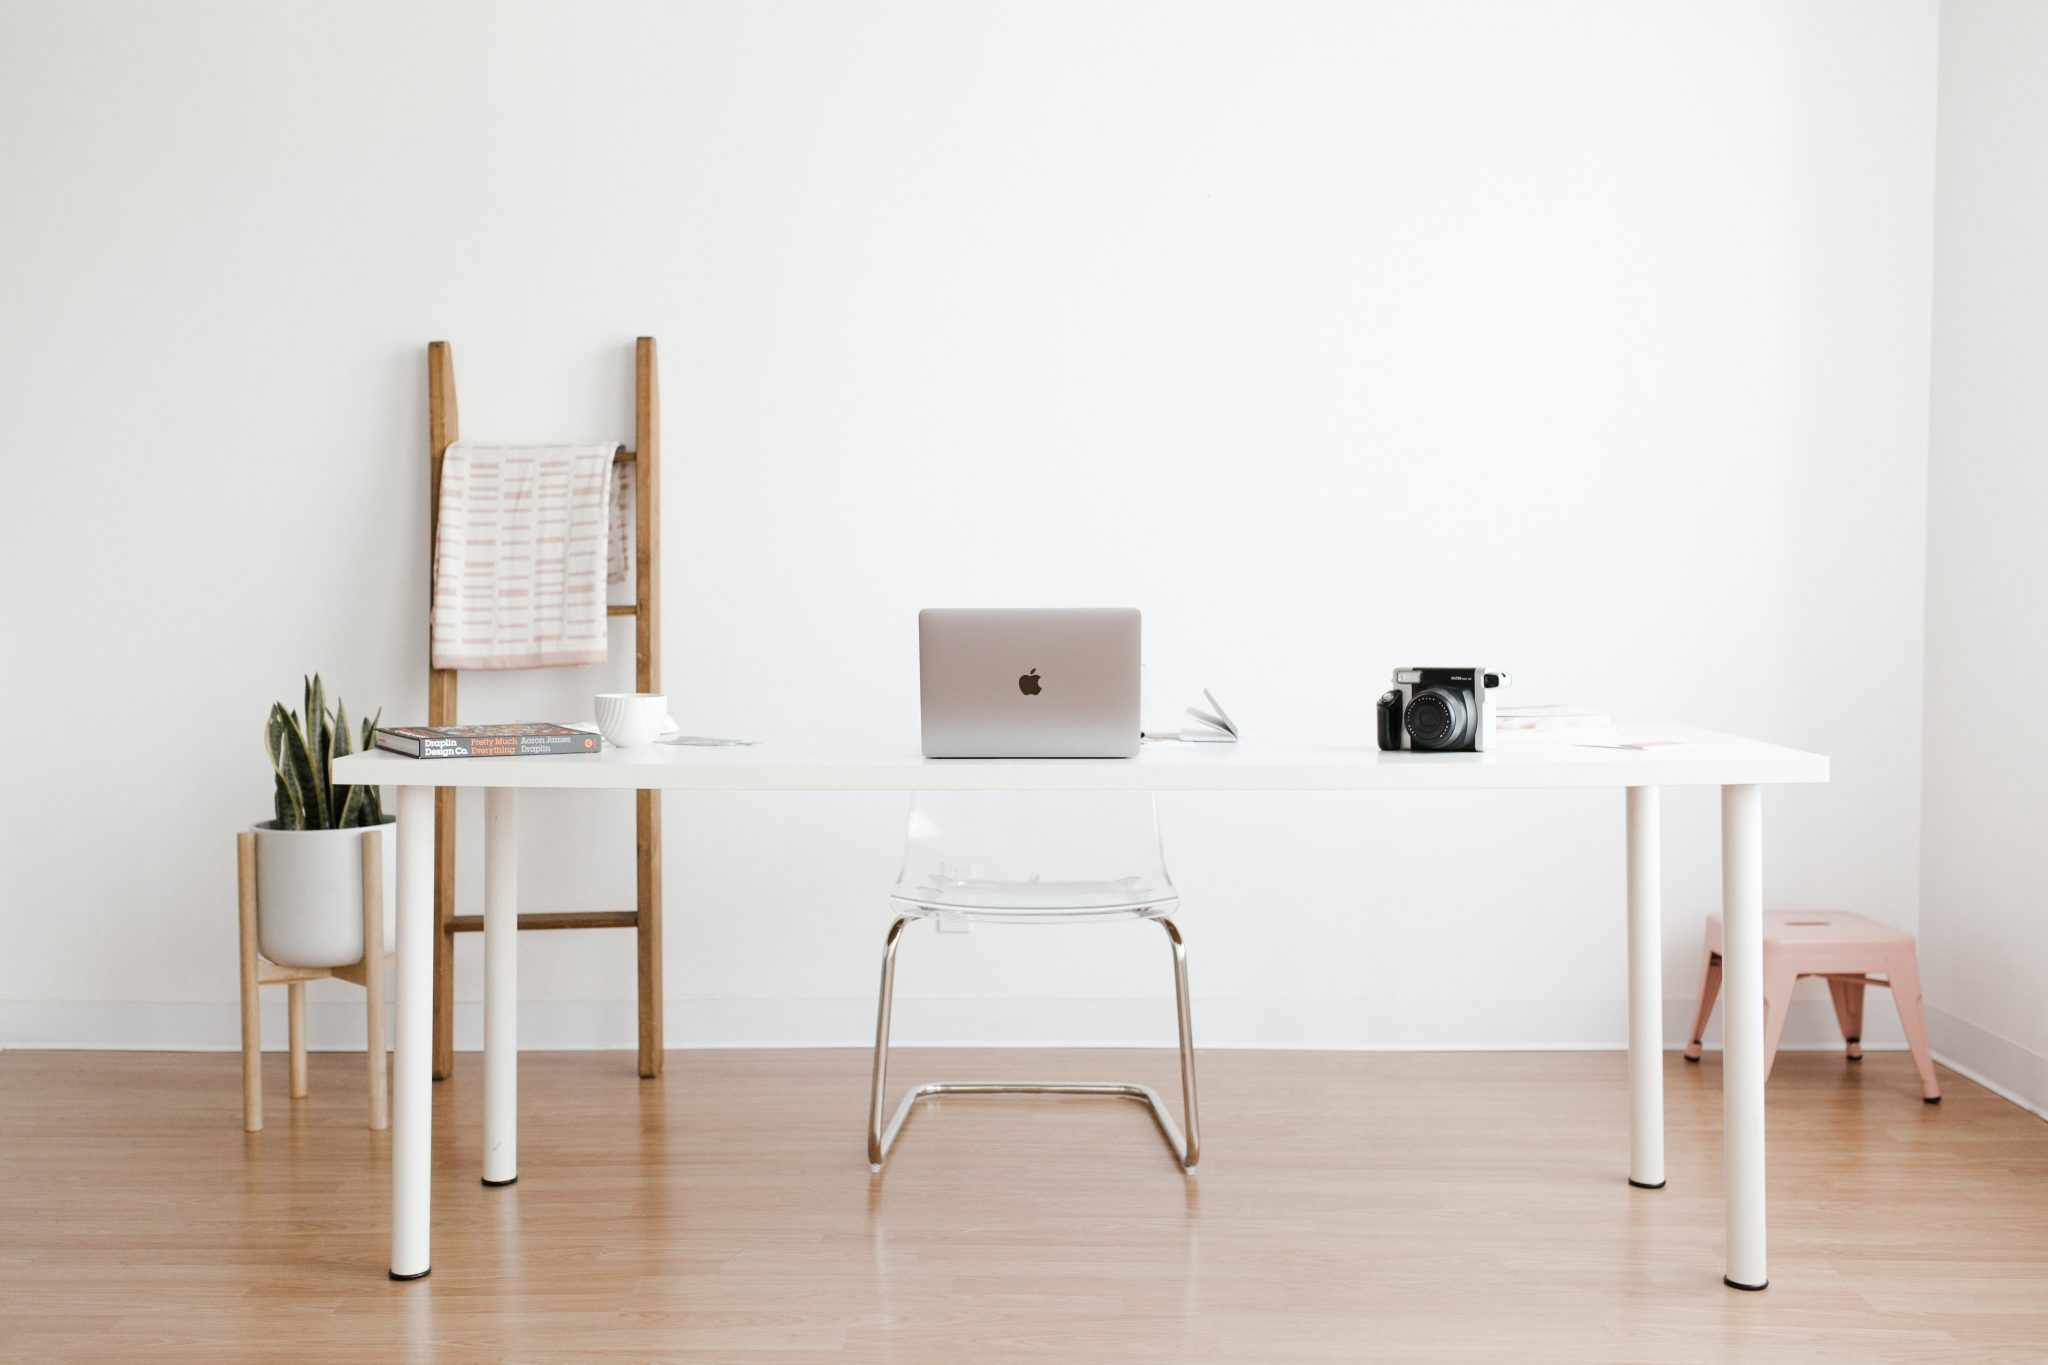 Hacks to Make Your Office More Productive